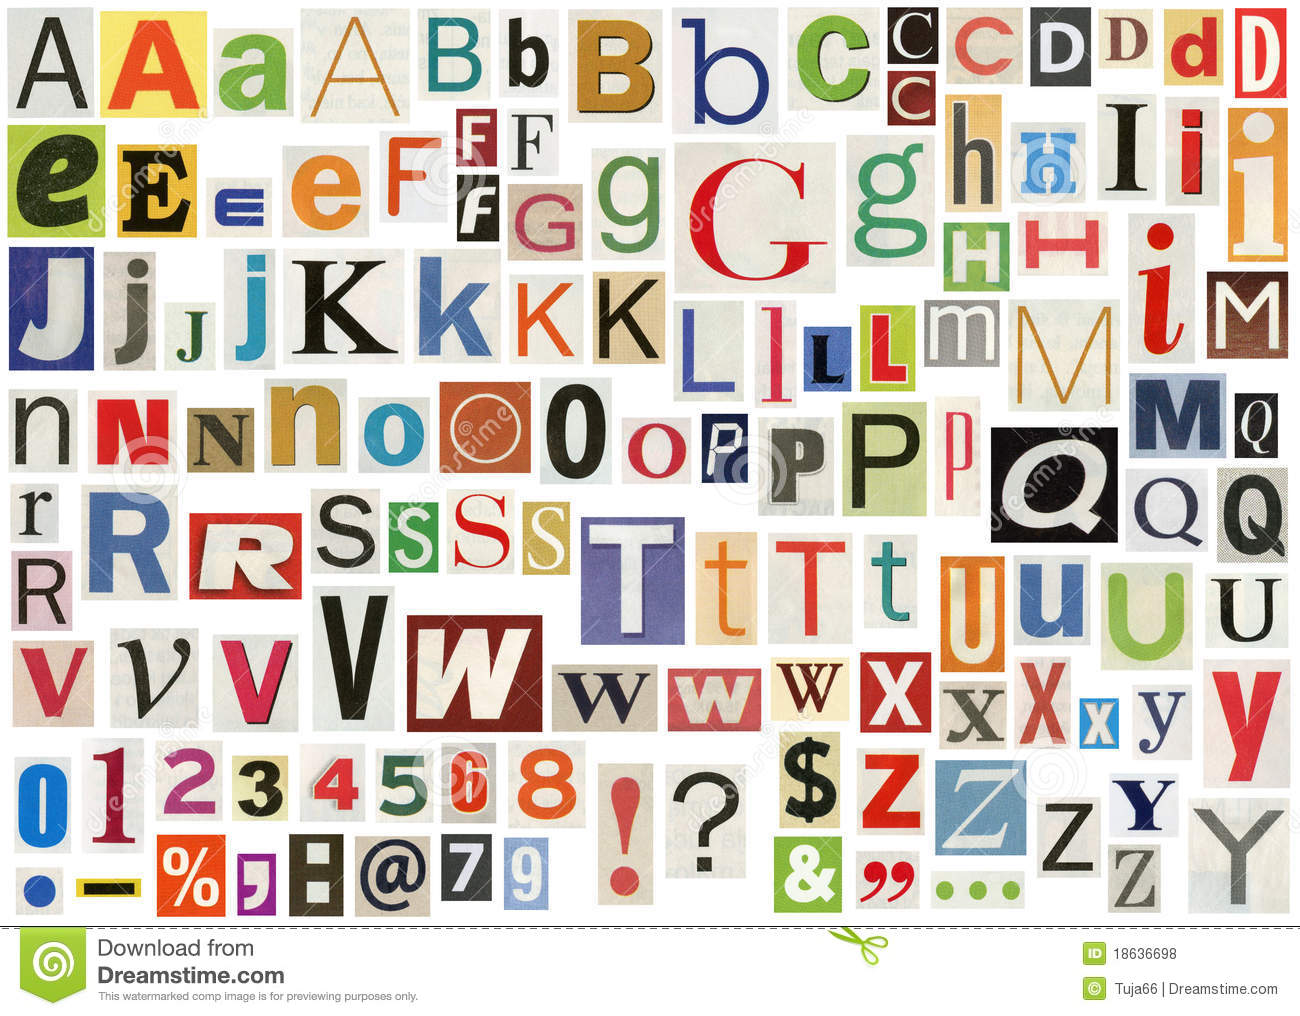 Alphabet E letters to print and cut out free - Newspaper Alphabet With Letters Numbers And Symbols Isolated On Letters Of